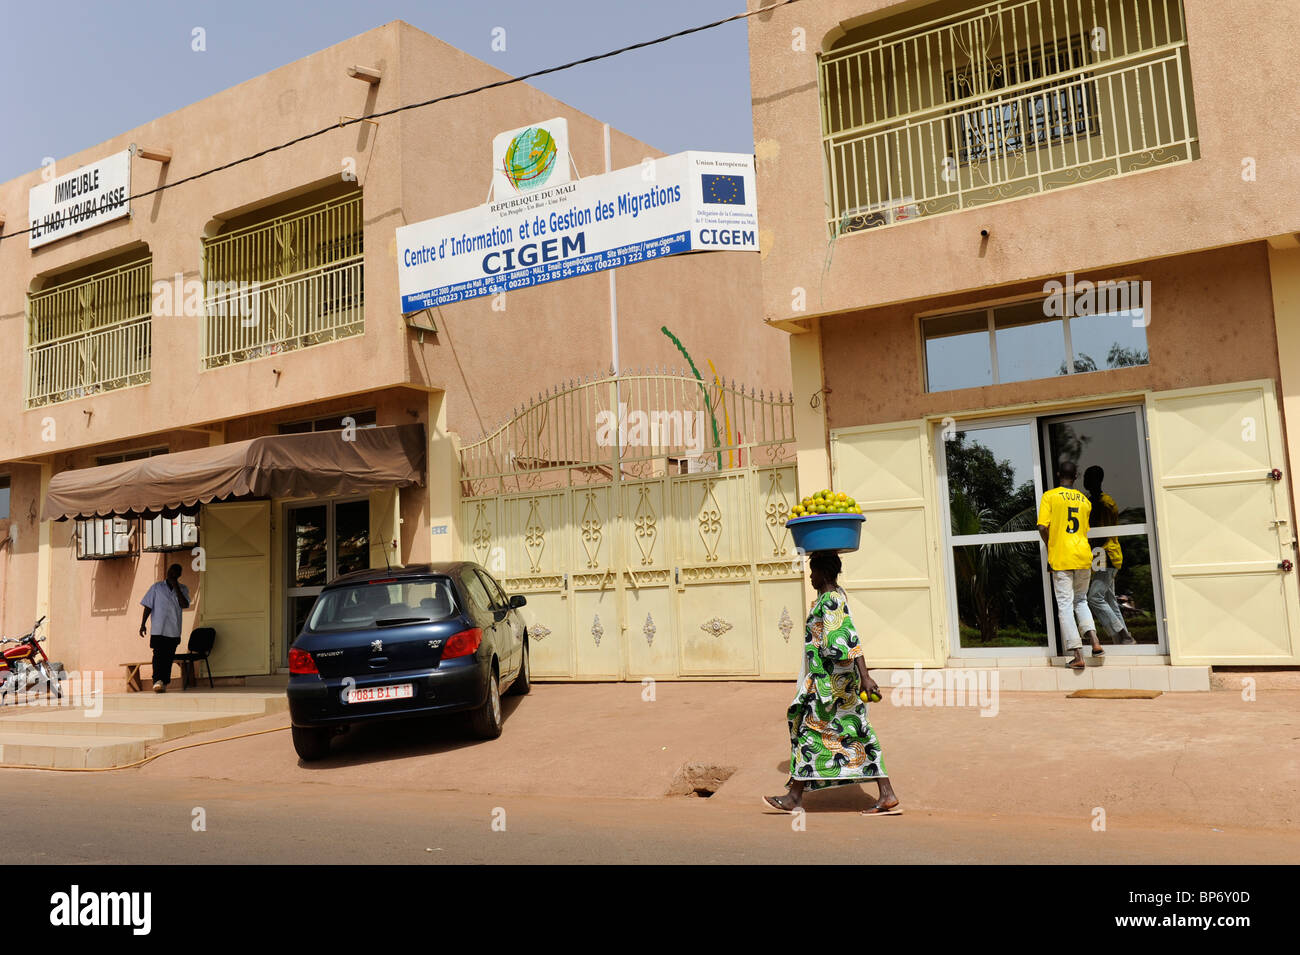 Africa Mali Bamako , CIGEM a from European Union financed center for consulting of african refugees and migrants - Stock Image